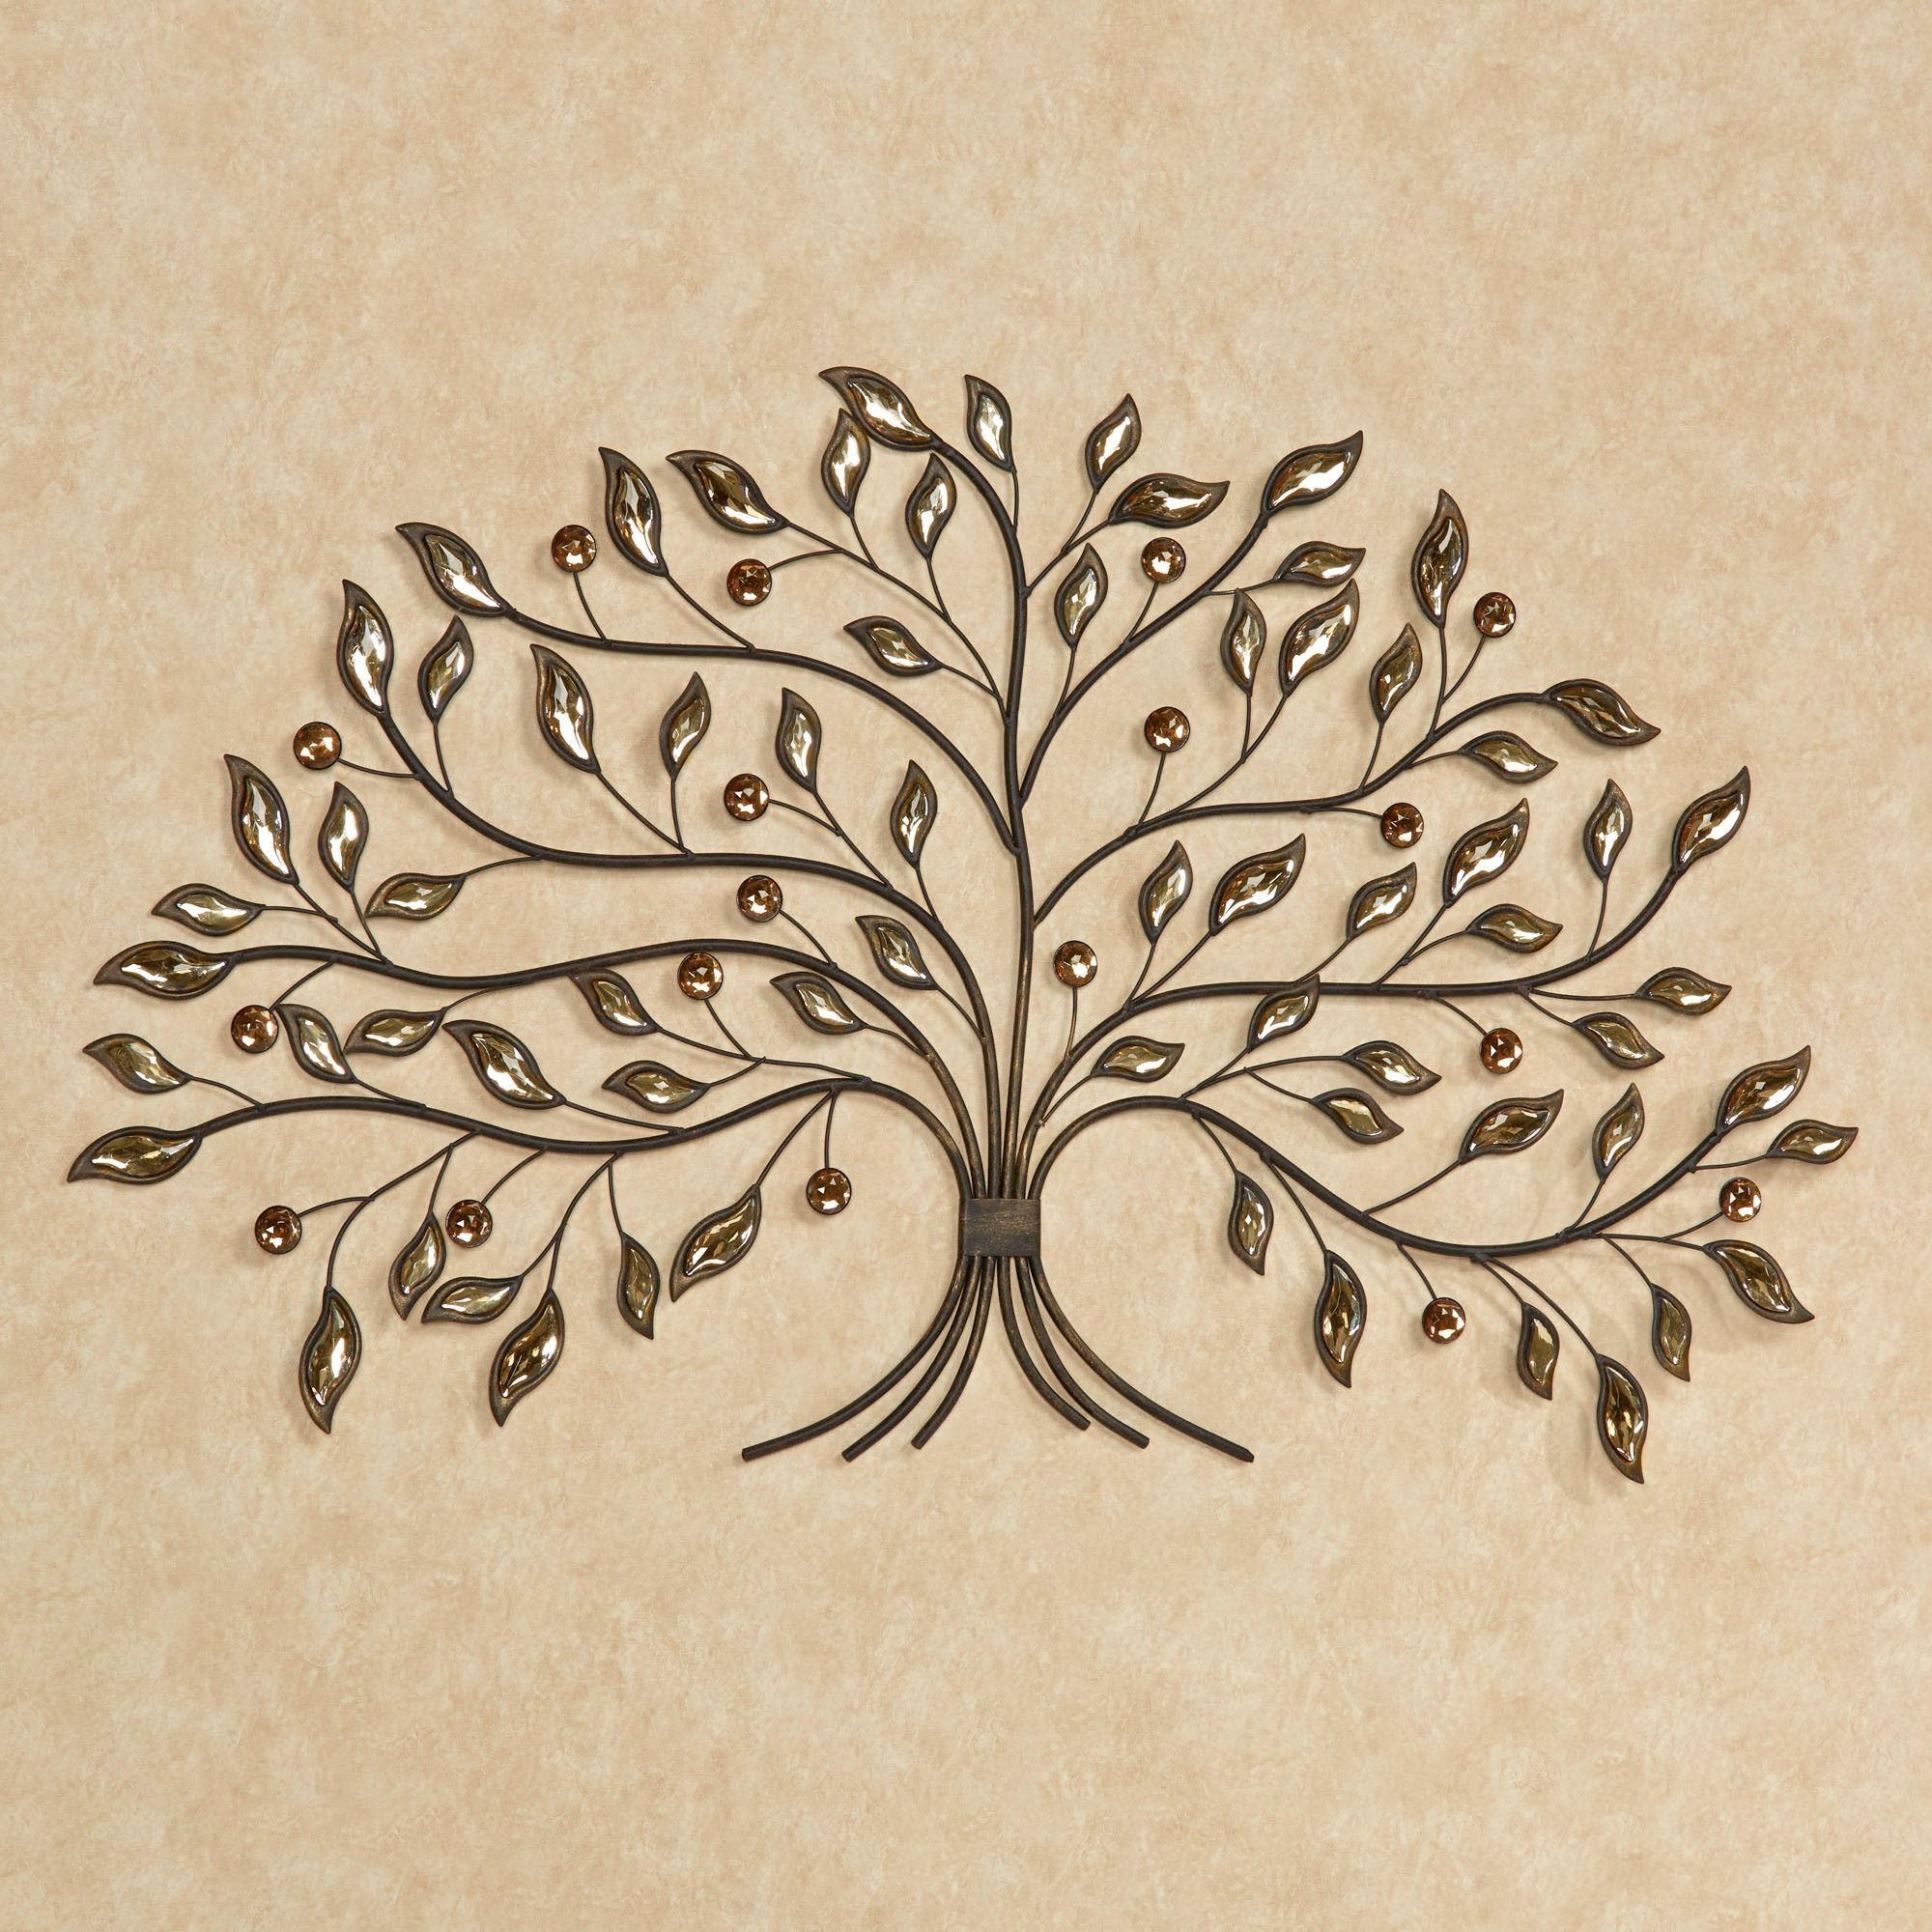 Alexandra Vining Gem Tree Metal Wall Art With Metal Wall Art Trees And Branches (Image 1 of 20)